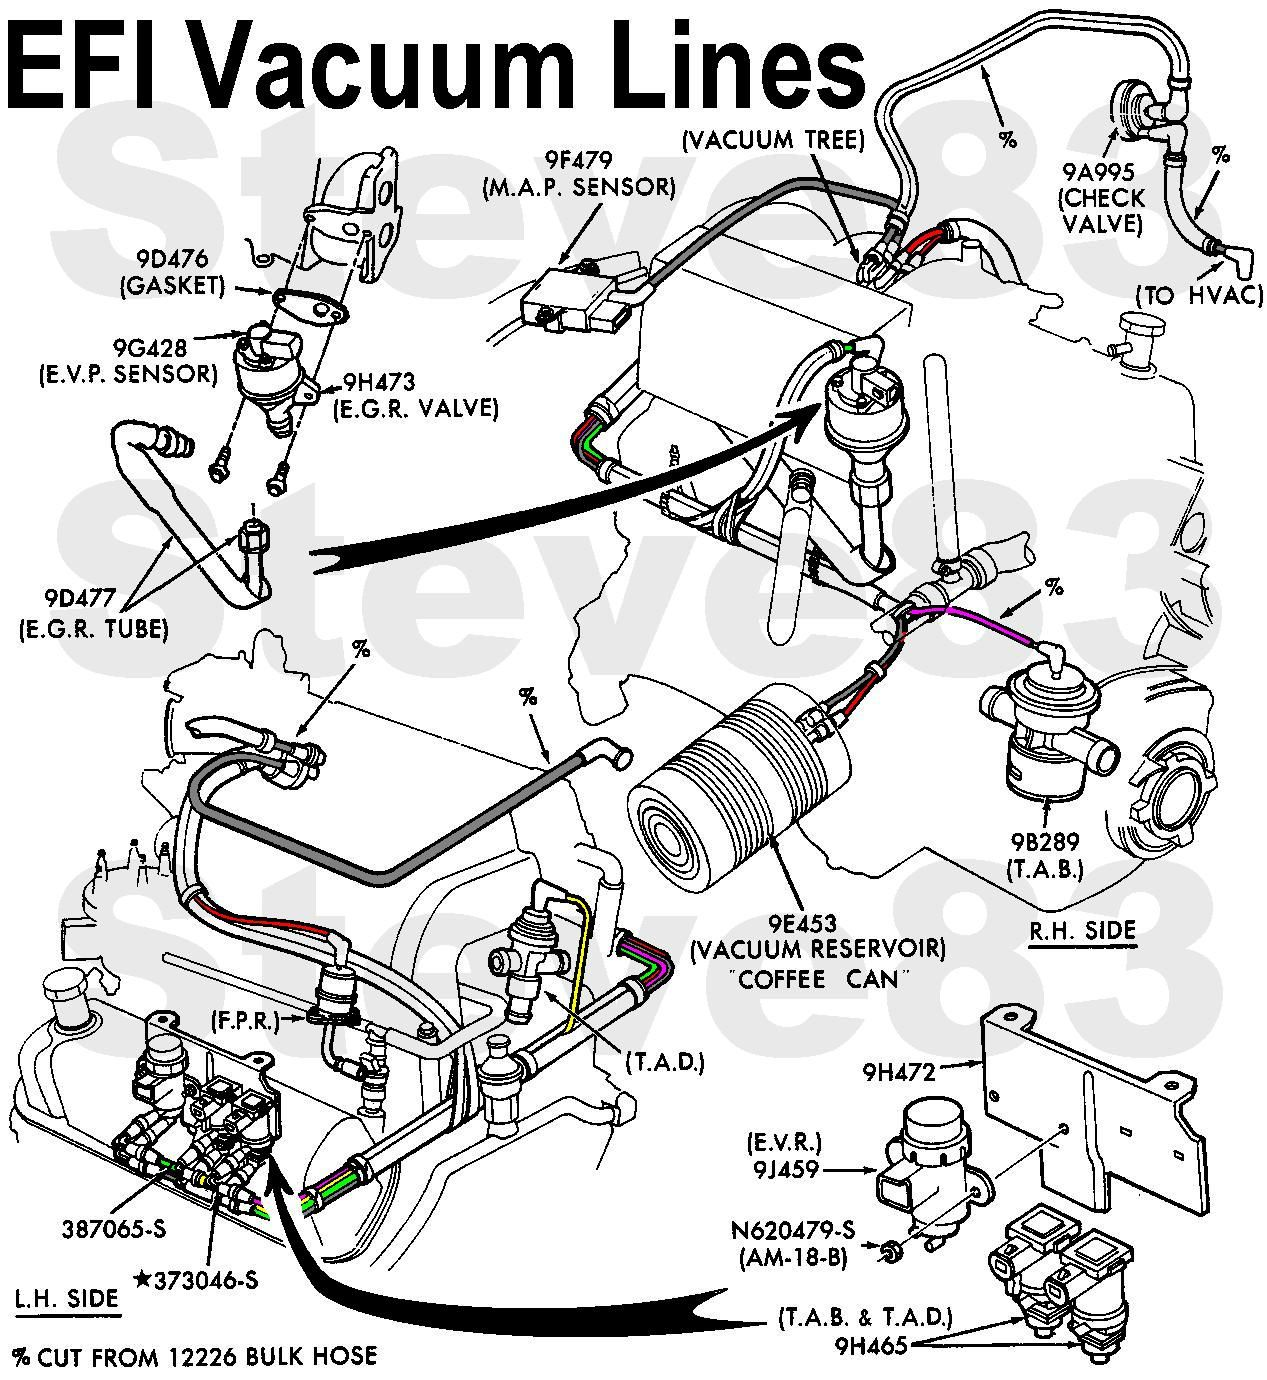 351w I Need Vacuum Line Diagram Please Help 1989 F 250 5 8l Ford Truck Enthusiasts Forums Electric Car Engine Automotive Mechanic Engineering